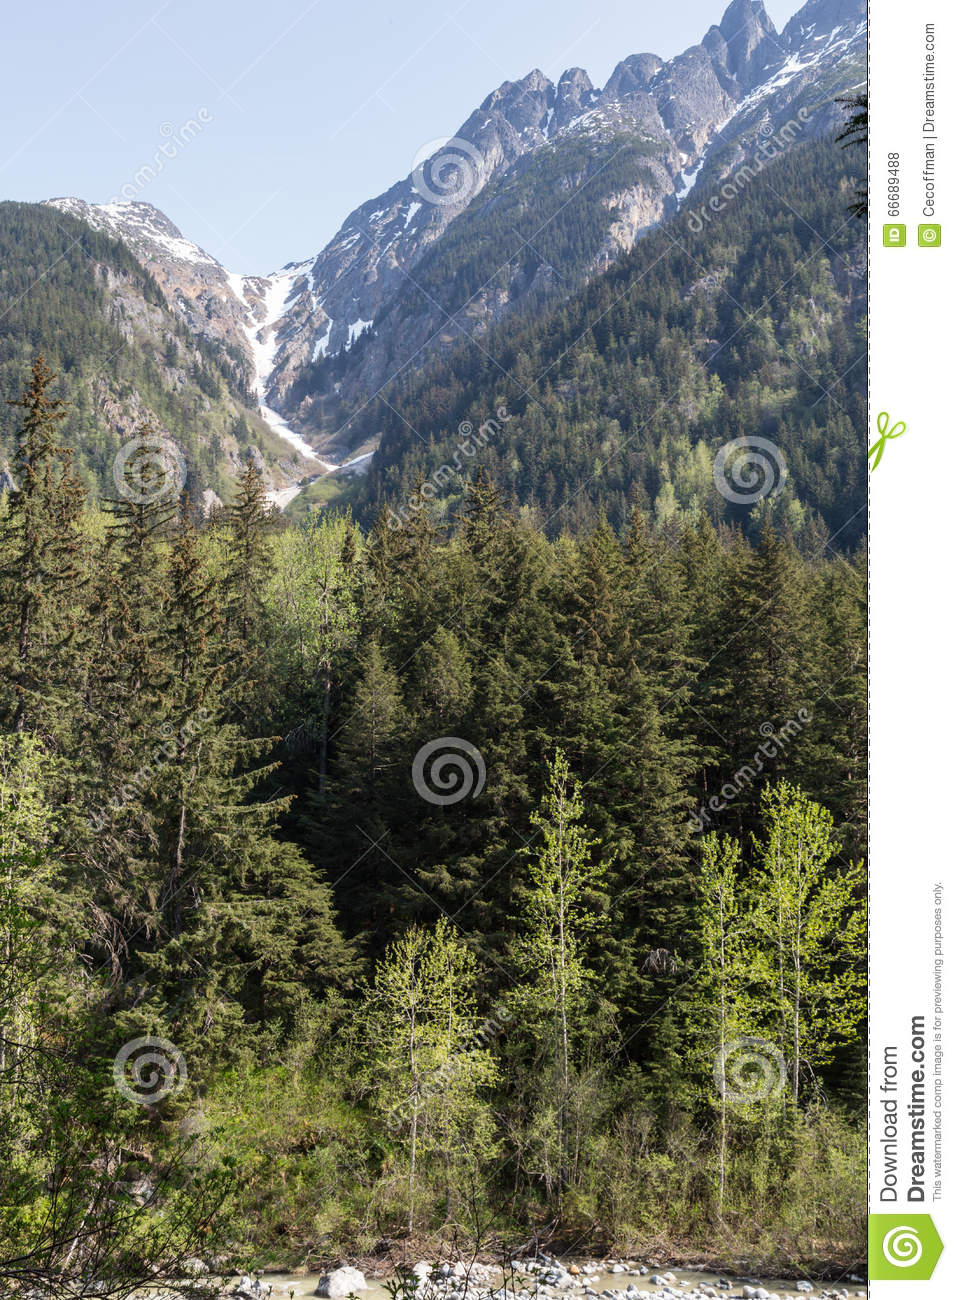 Alaska s Mountains and Forests